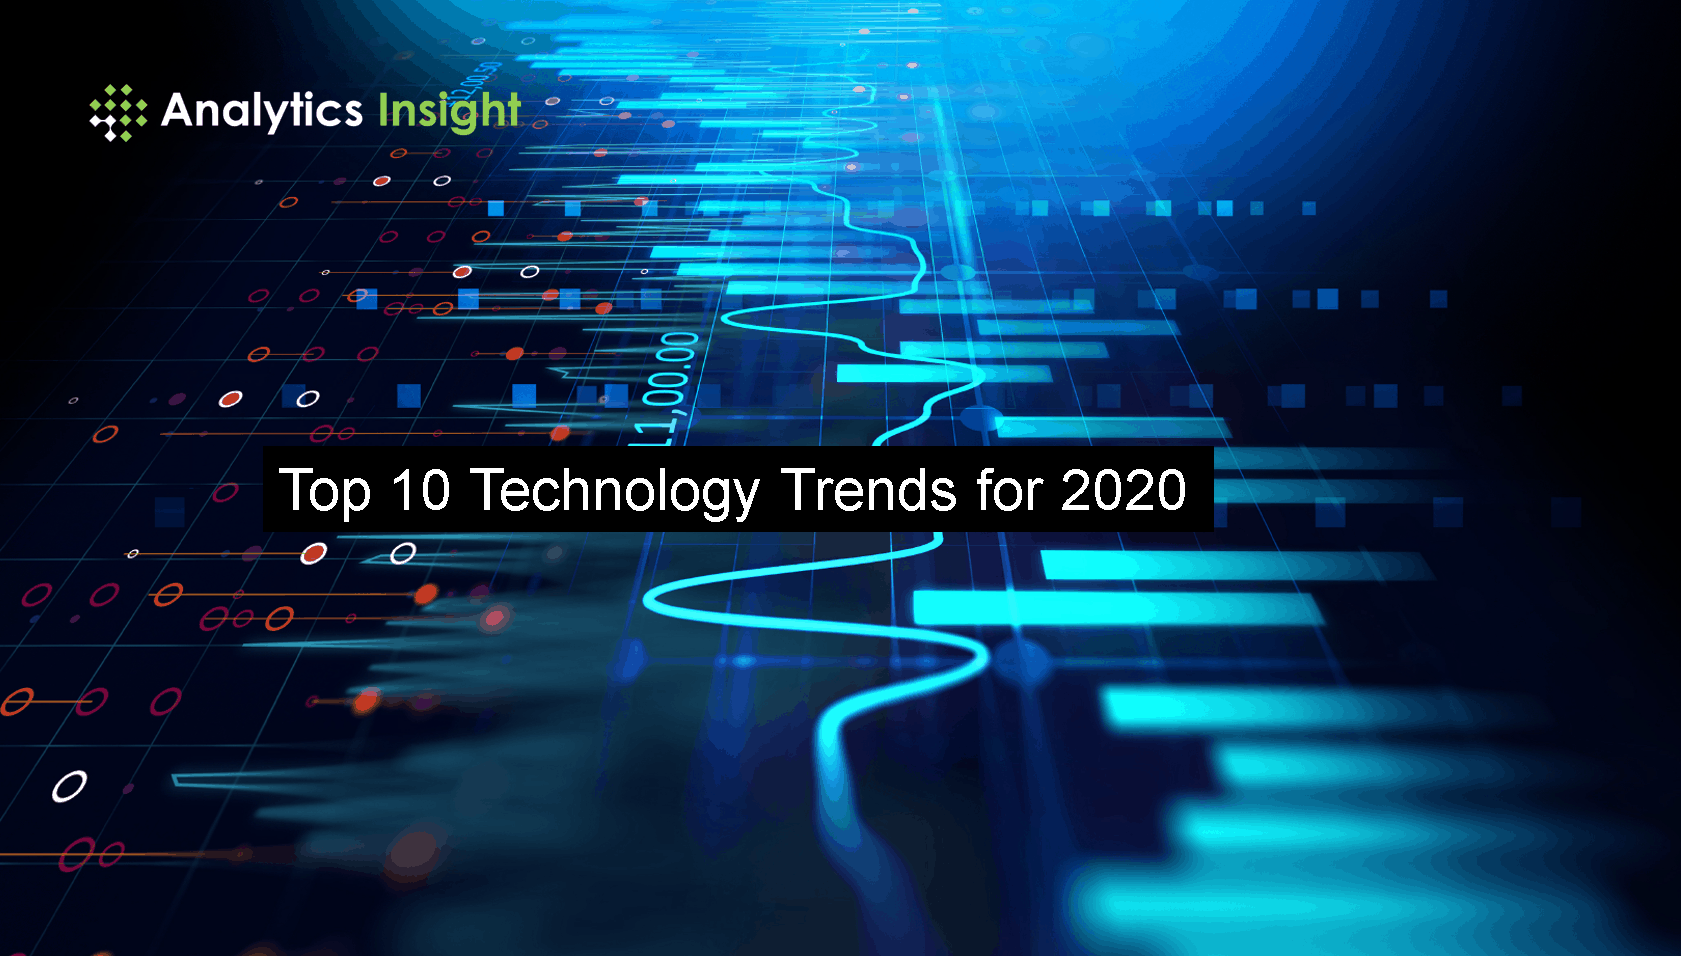 Top Technology Trends 2020.Top 10 Technology Trends For 2020 Analytics Insight